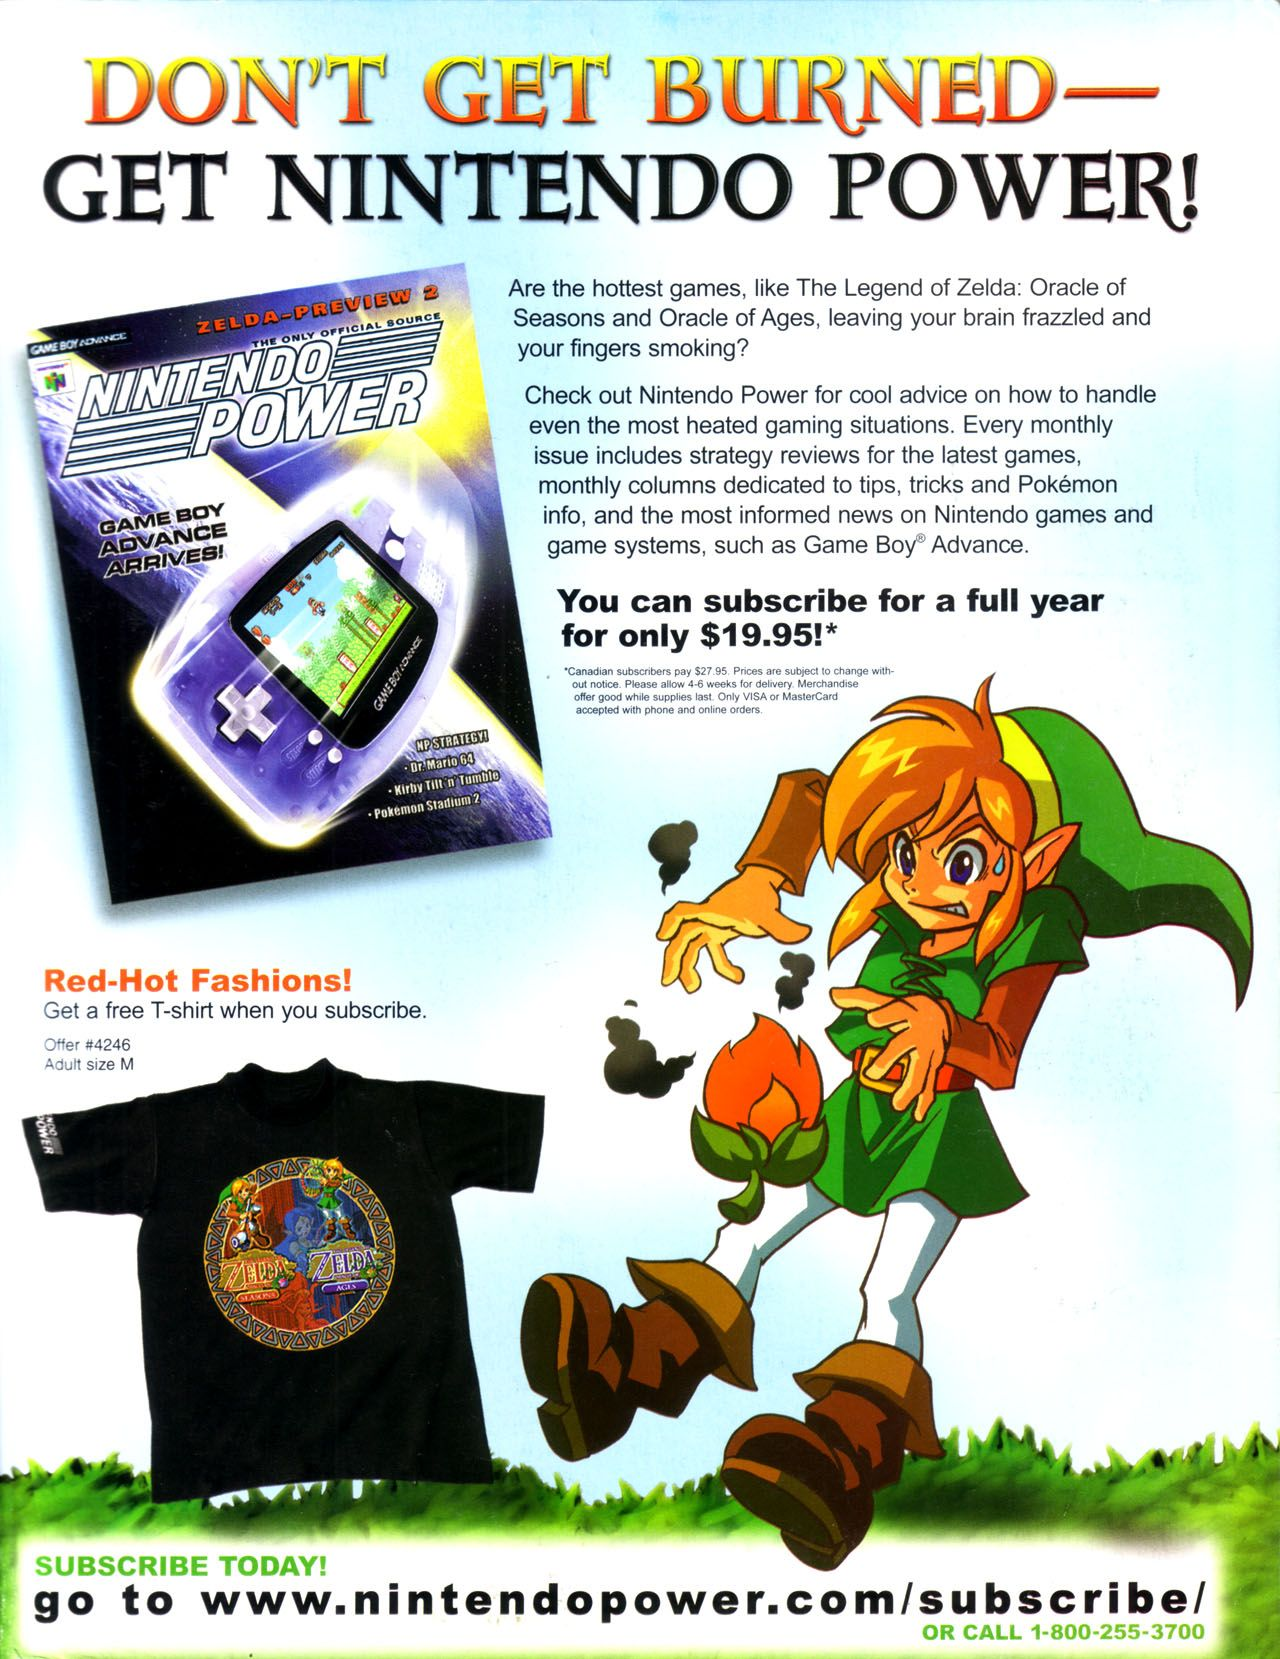 Gameboy color ad - Zelda Oracles Gbc Nintendo Power Ad Nintendo Player S Guide Gaming Ads